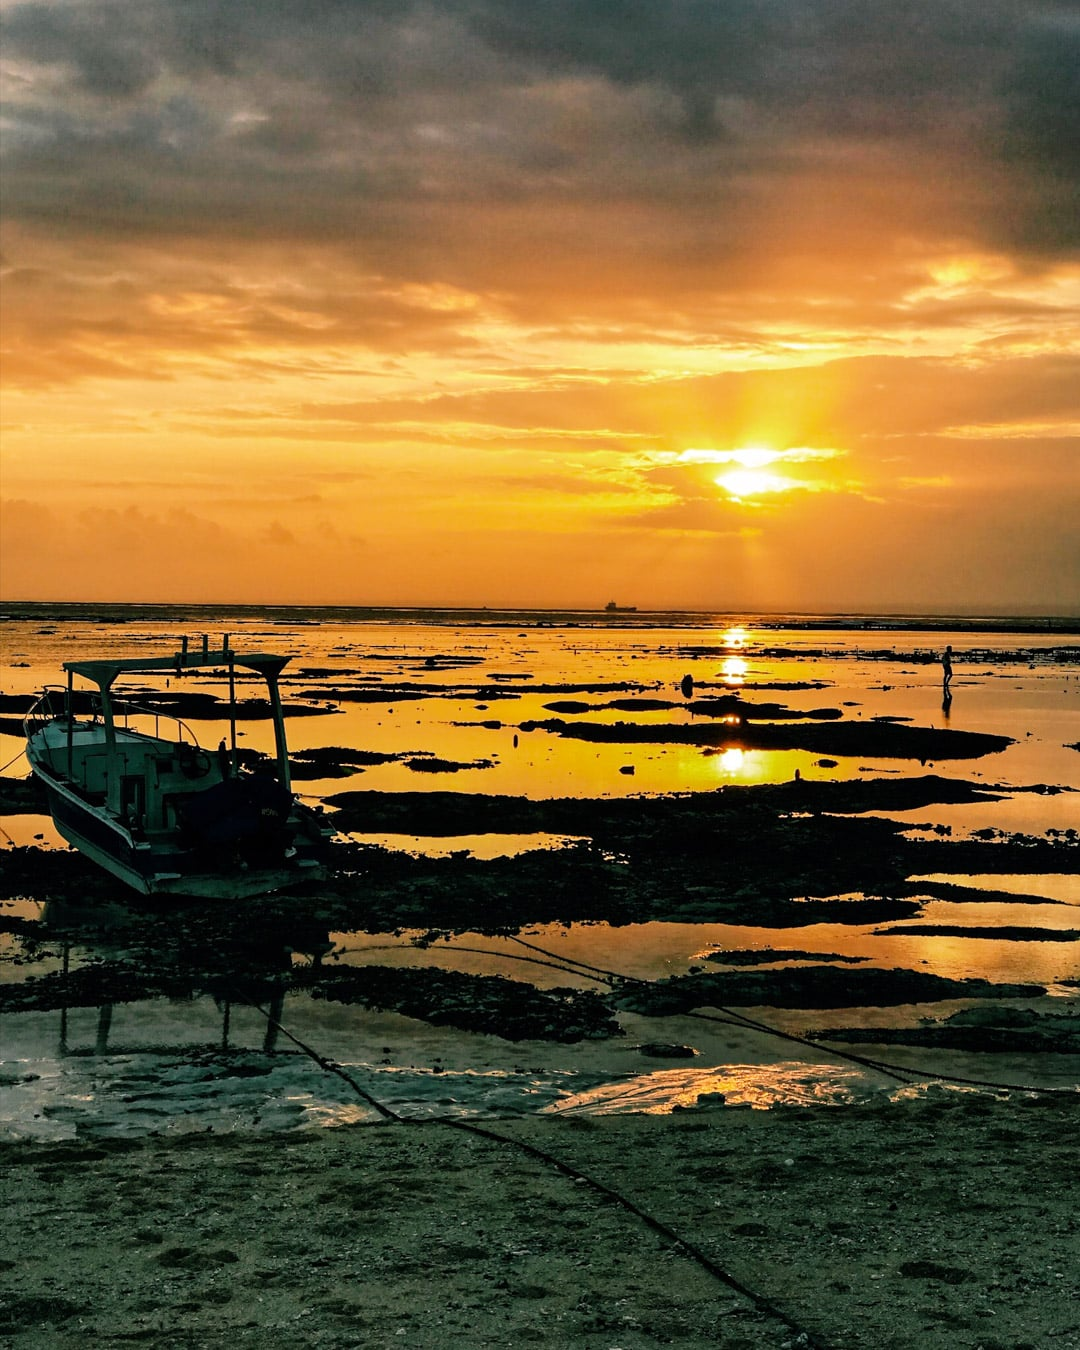 Lembongan Sunset